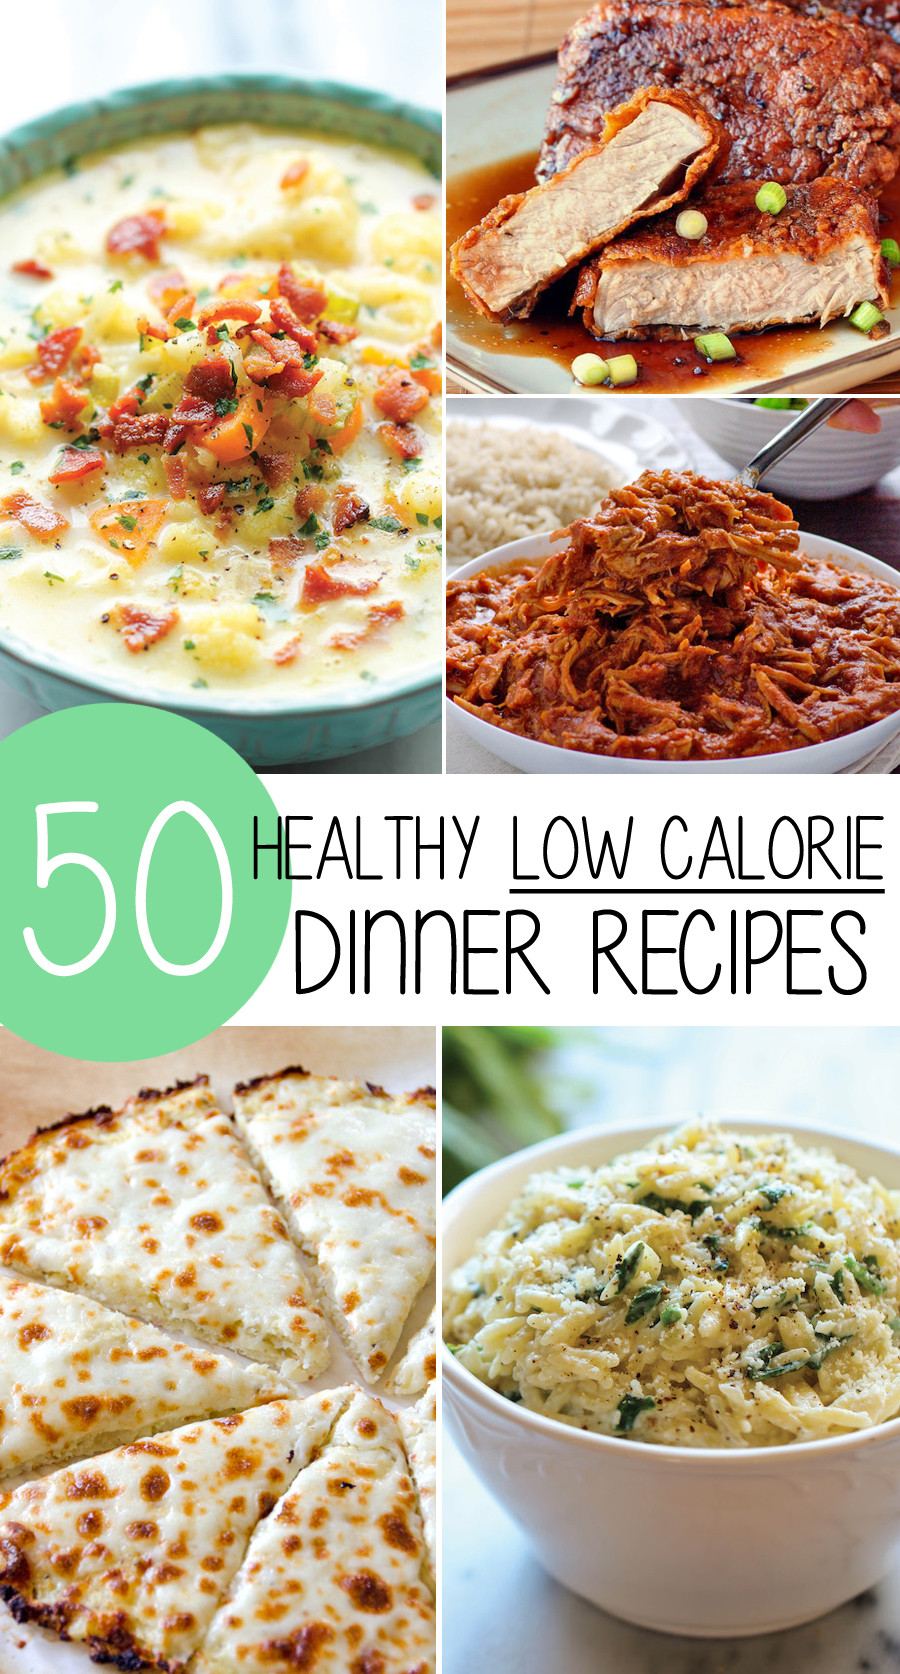 Healthy Dinner Ideas For Weight Loss  50 Healthy Low Calorie Weight Loss Dinner Recipes